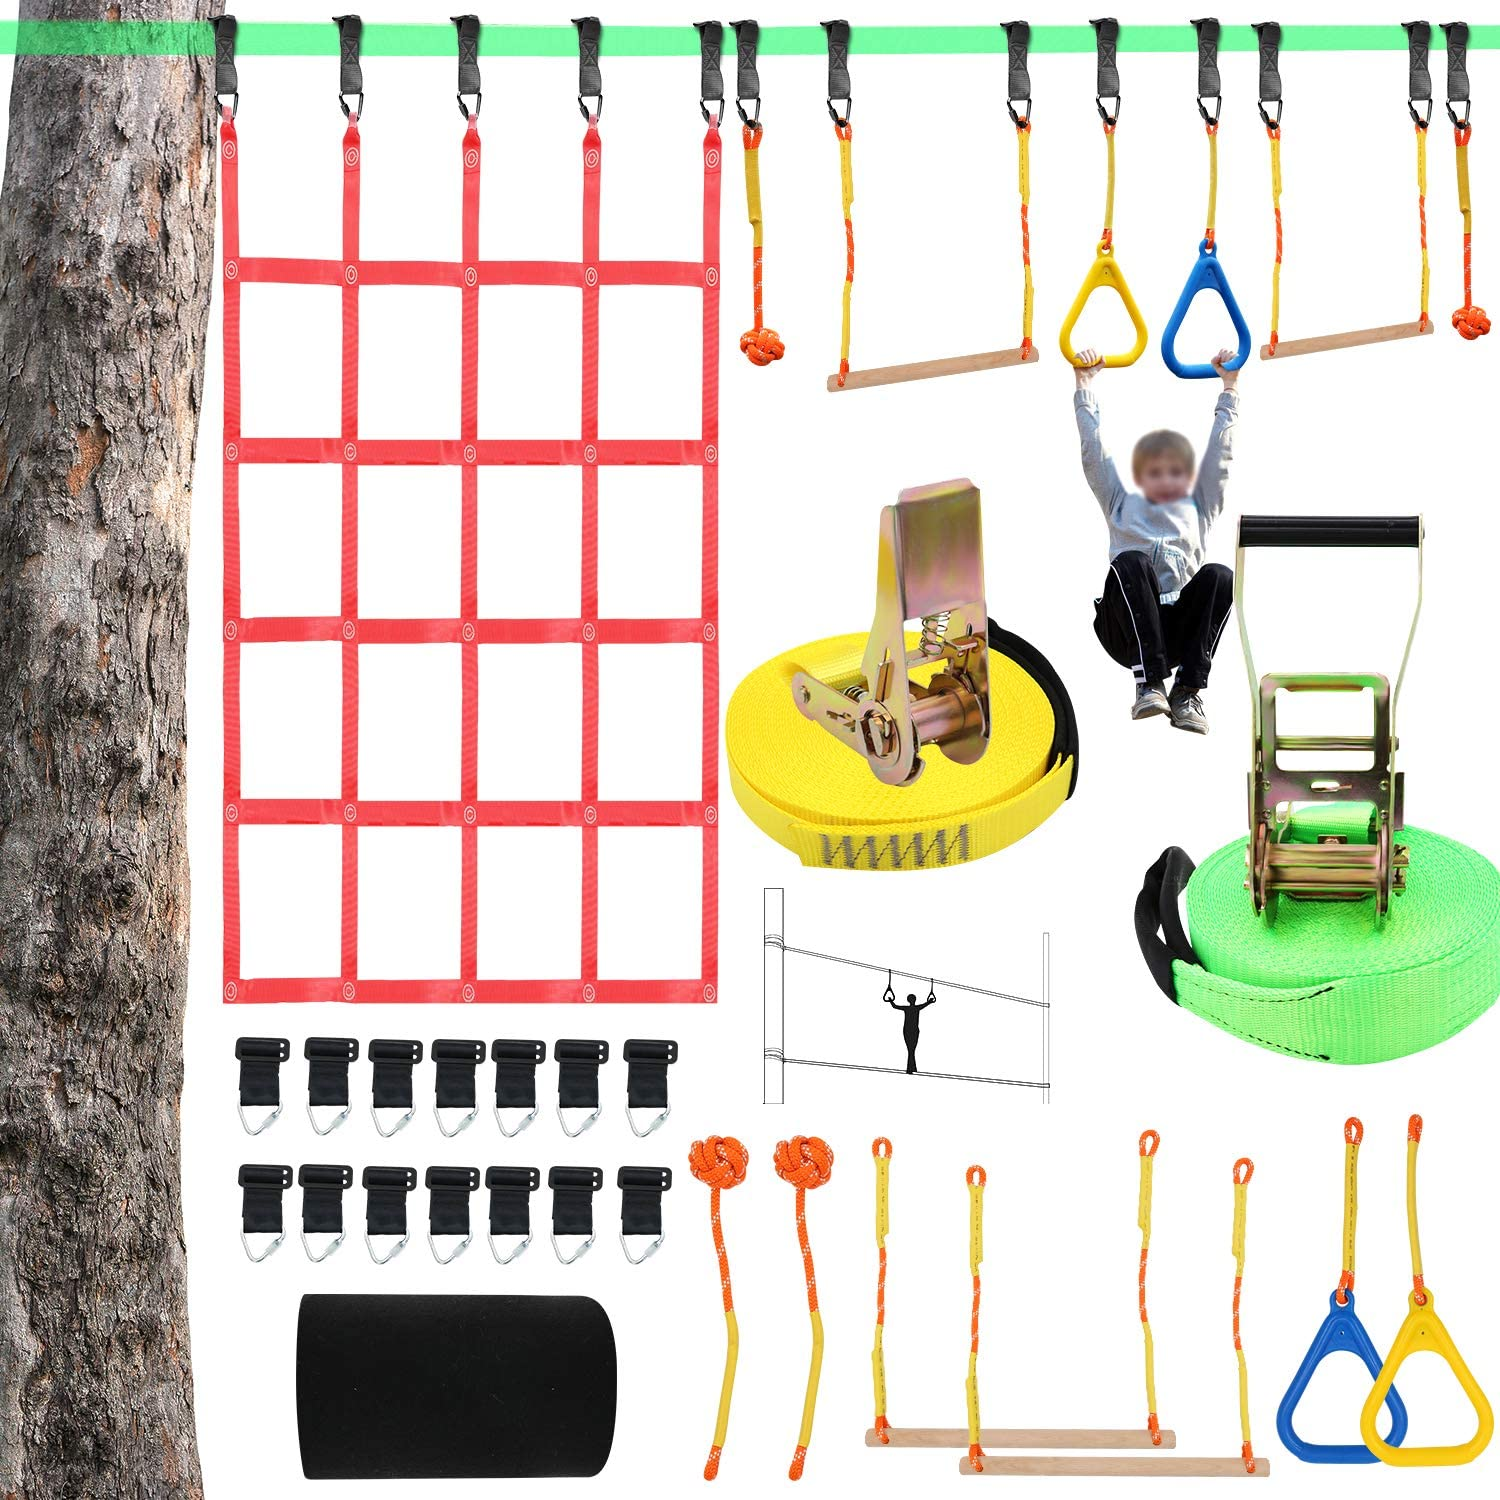 """X XBEN Obstacle Course Kids 50' Slackline Kit, Ninja Warrior Training Equipment for Adult, Come with Jungle Gym Monkey Bars, 78.7"""" 47.2"""" Climbing Net, Gymnastic Bar"""